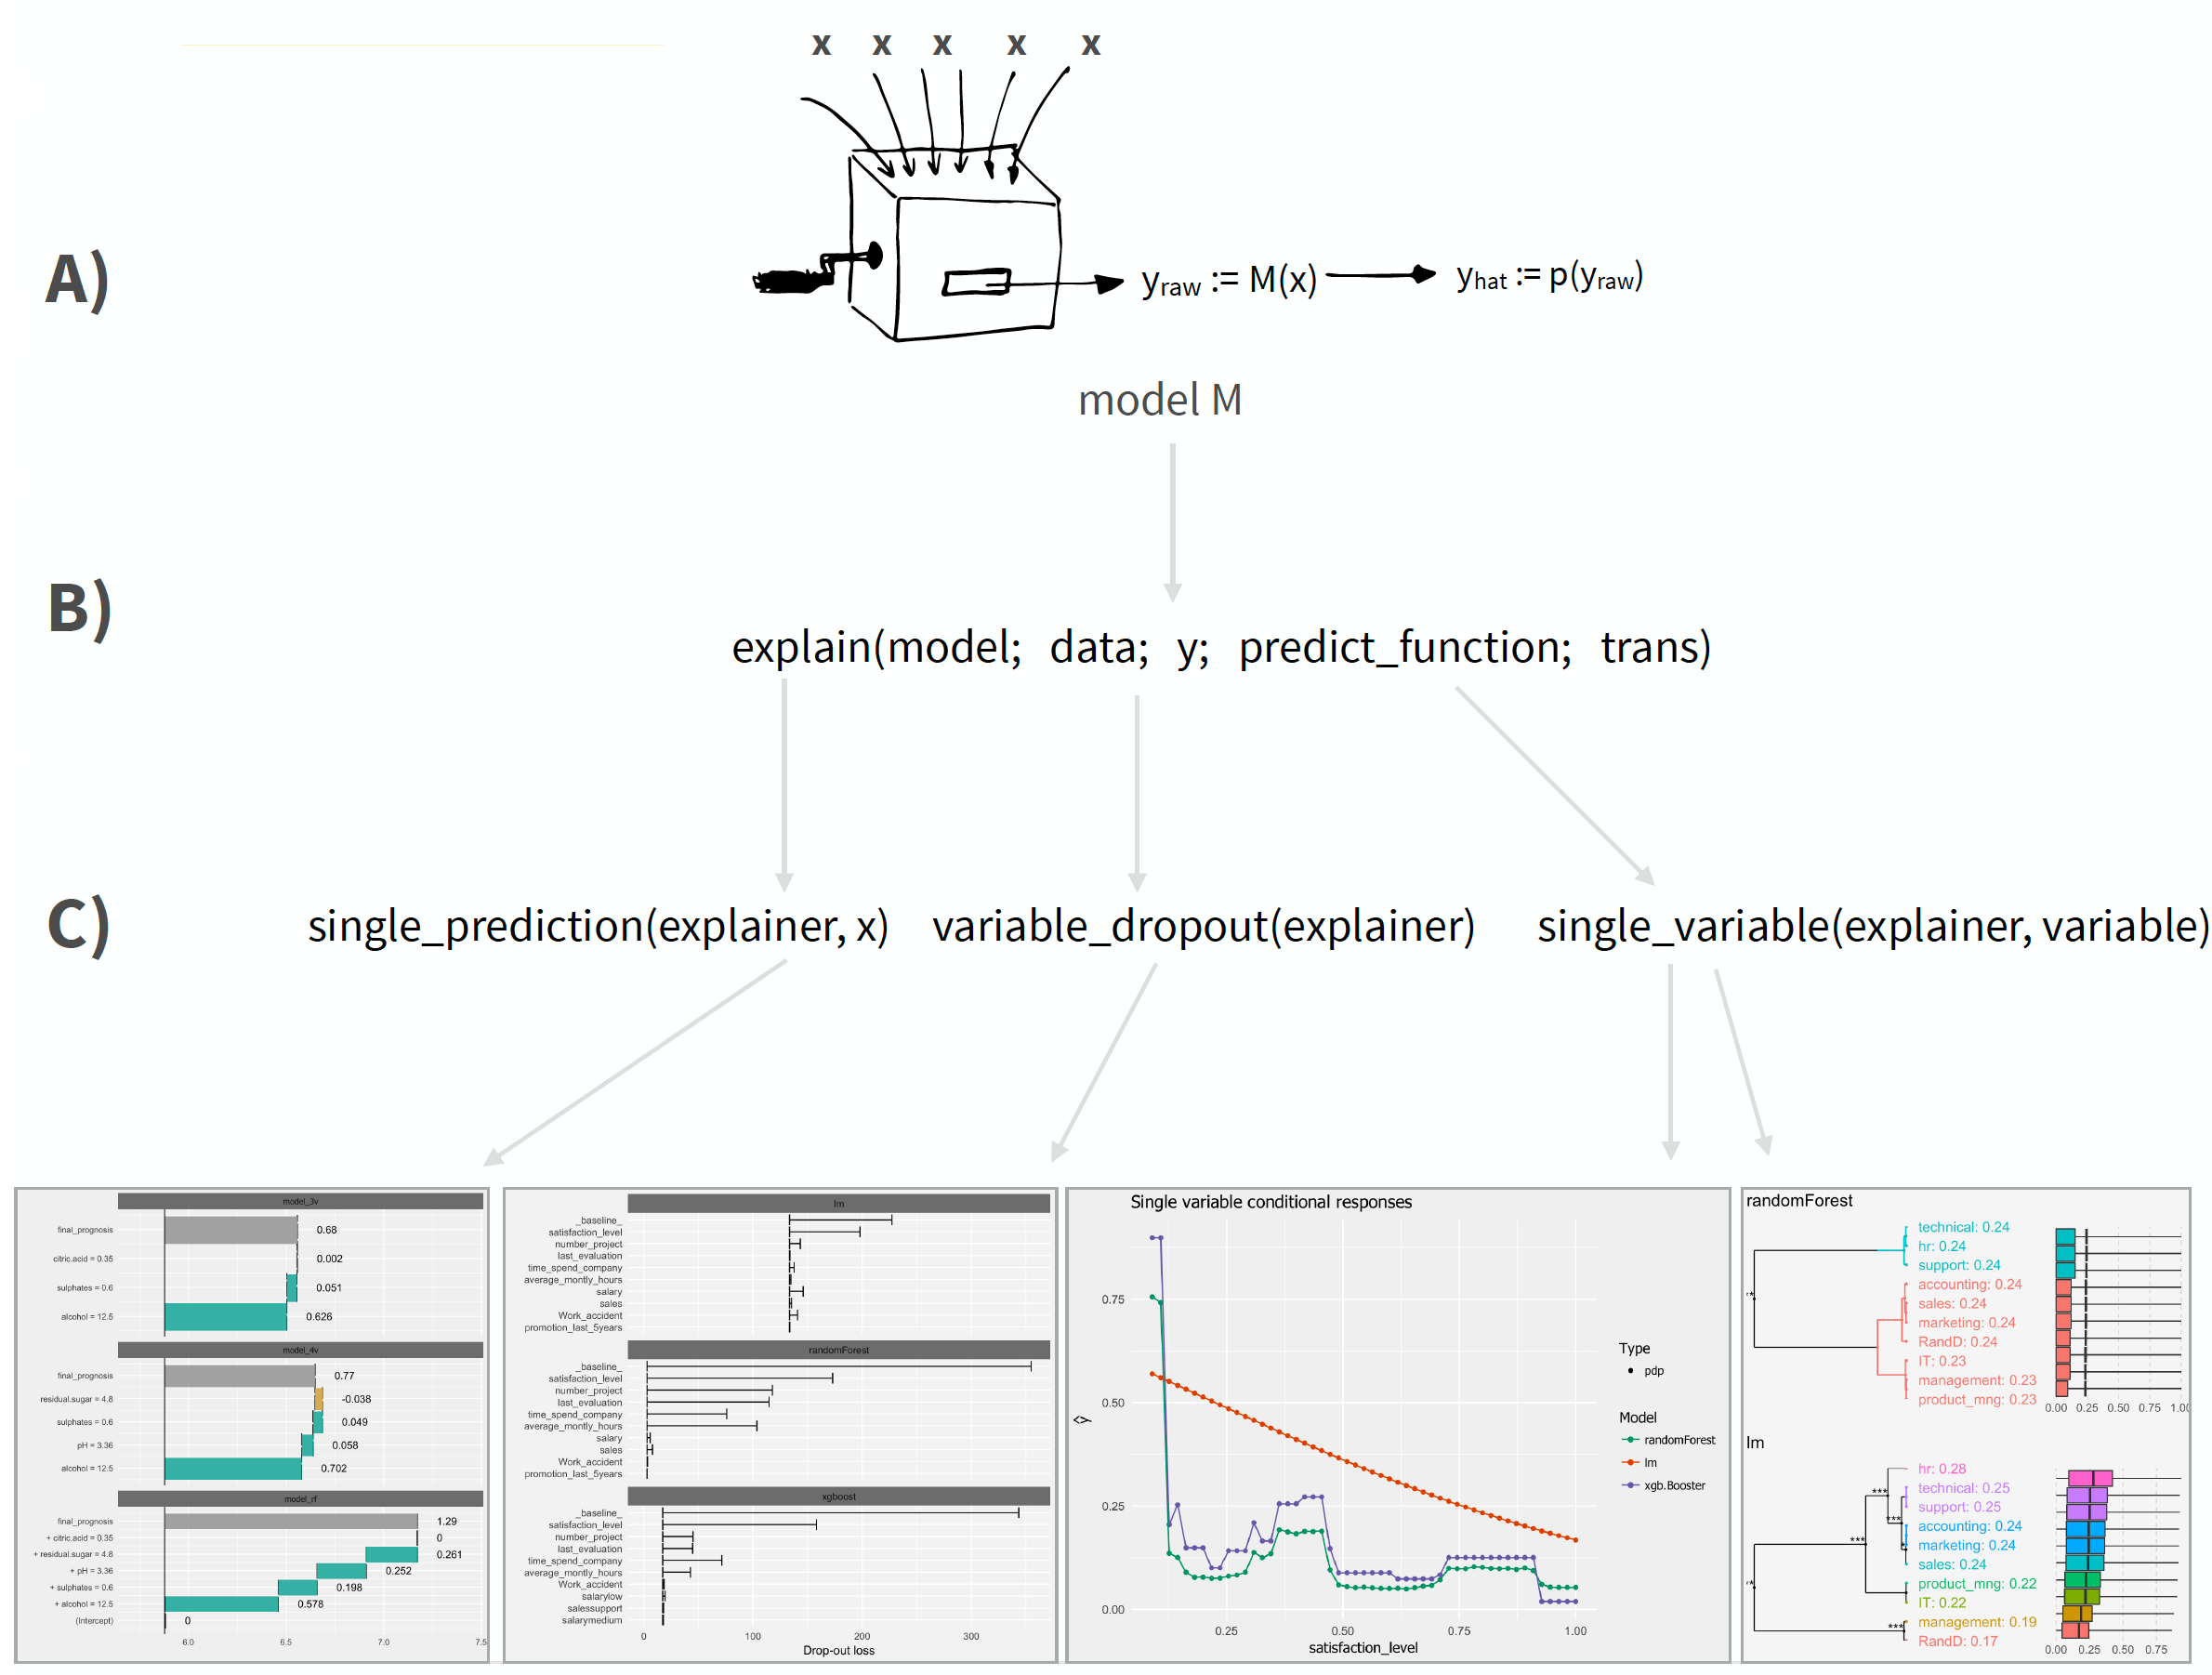 DALEX and H2O: Machine Learning Model Interpretability And Feature Explanation